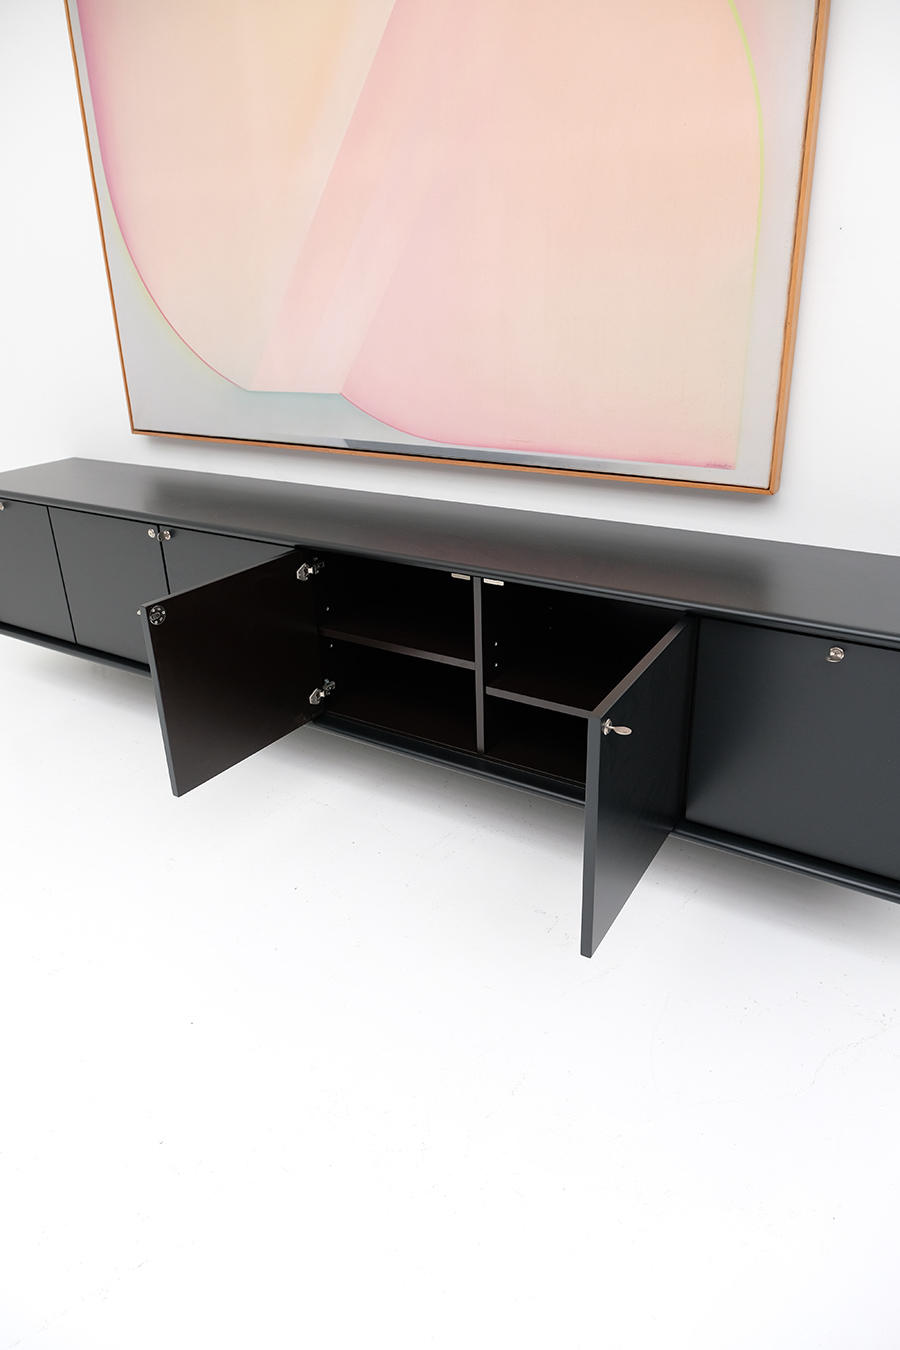 floating space age sideboard image 13